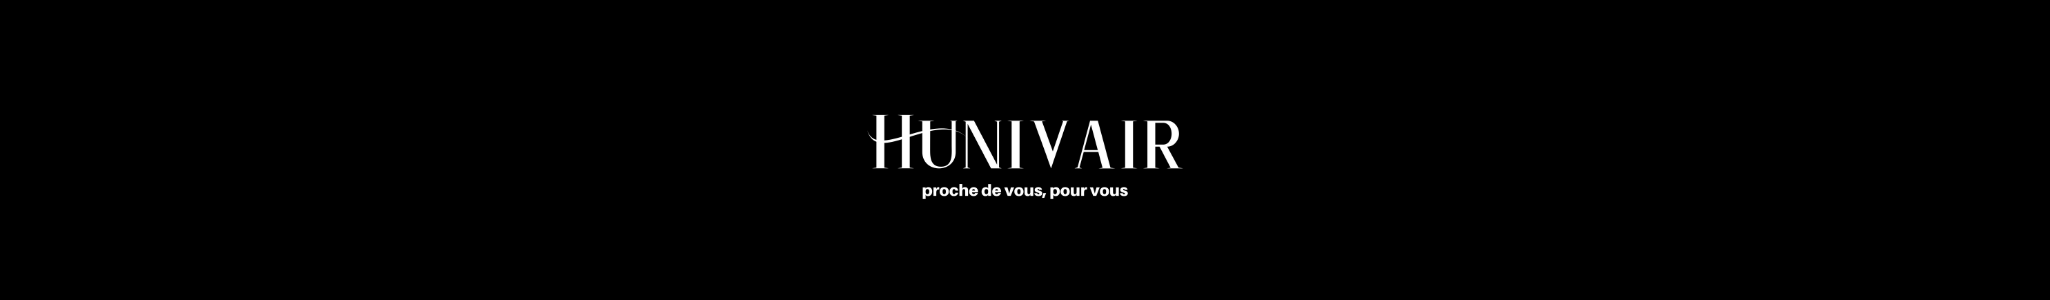 hunivair securite privee